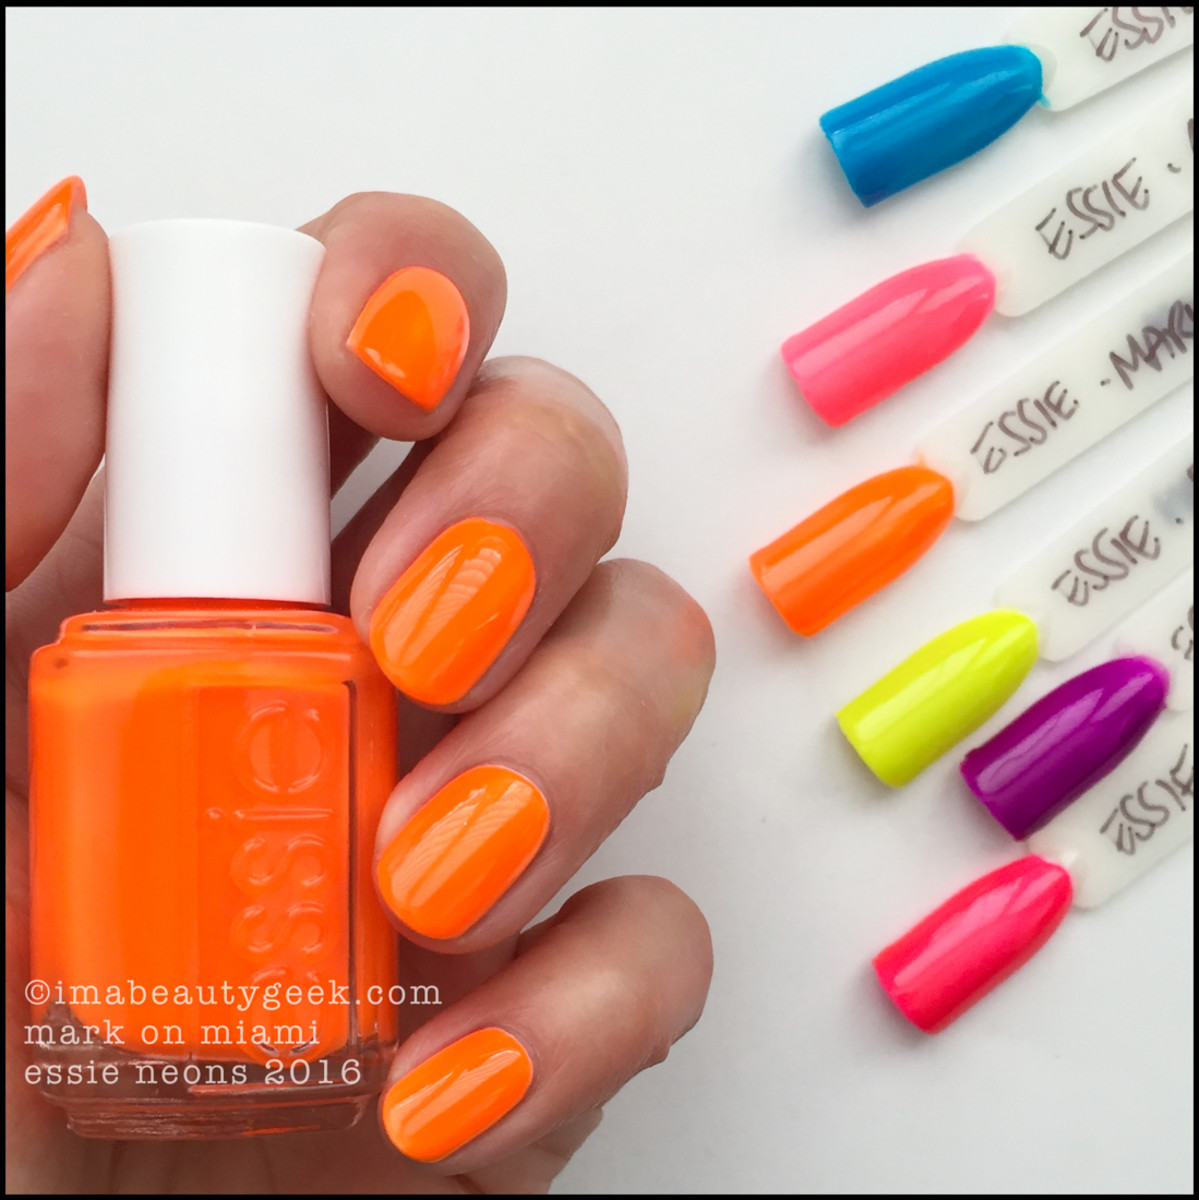 Essie Mark on Miami_Essie Neons 2016 Collection Swatches Review